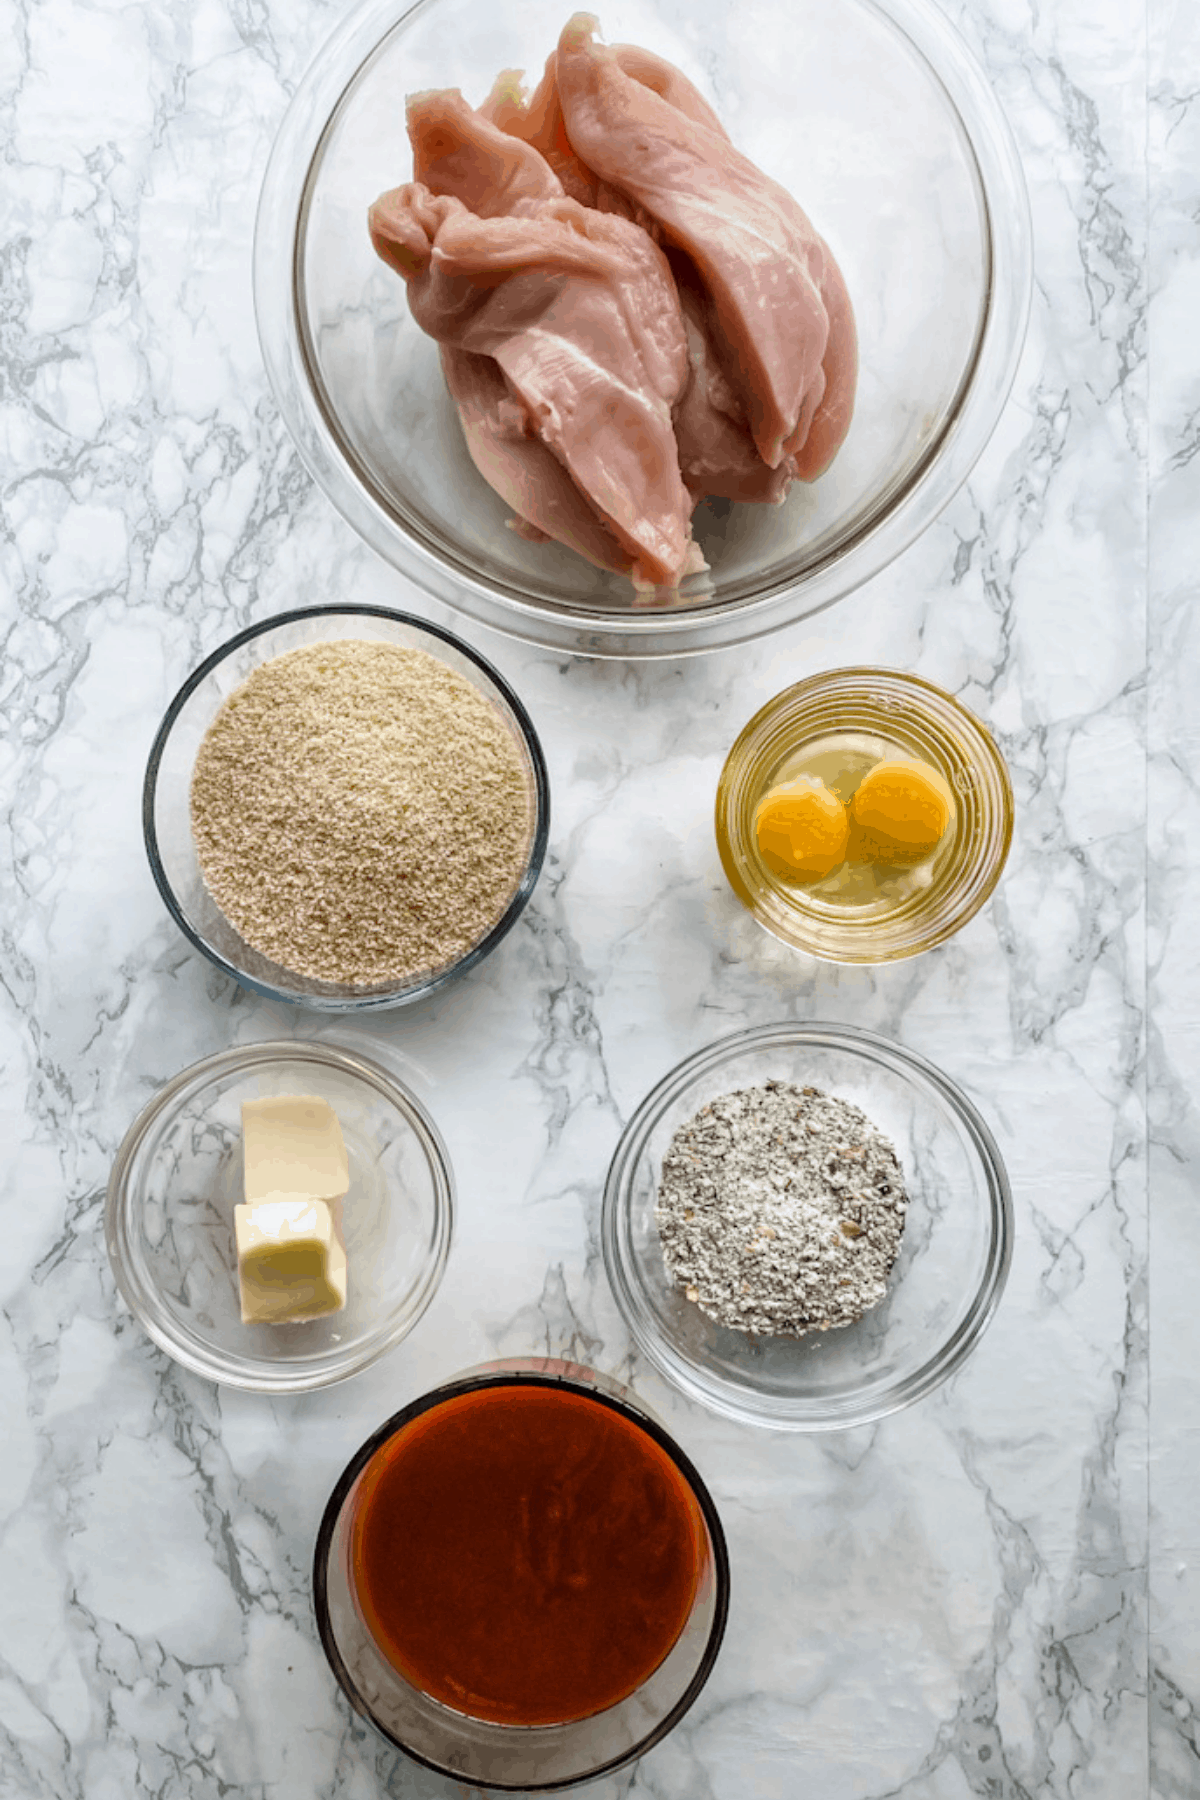 The ingredients to make baked buffalo chicken tenders.